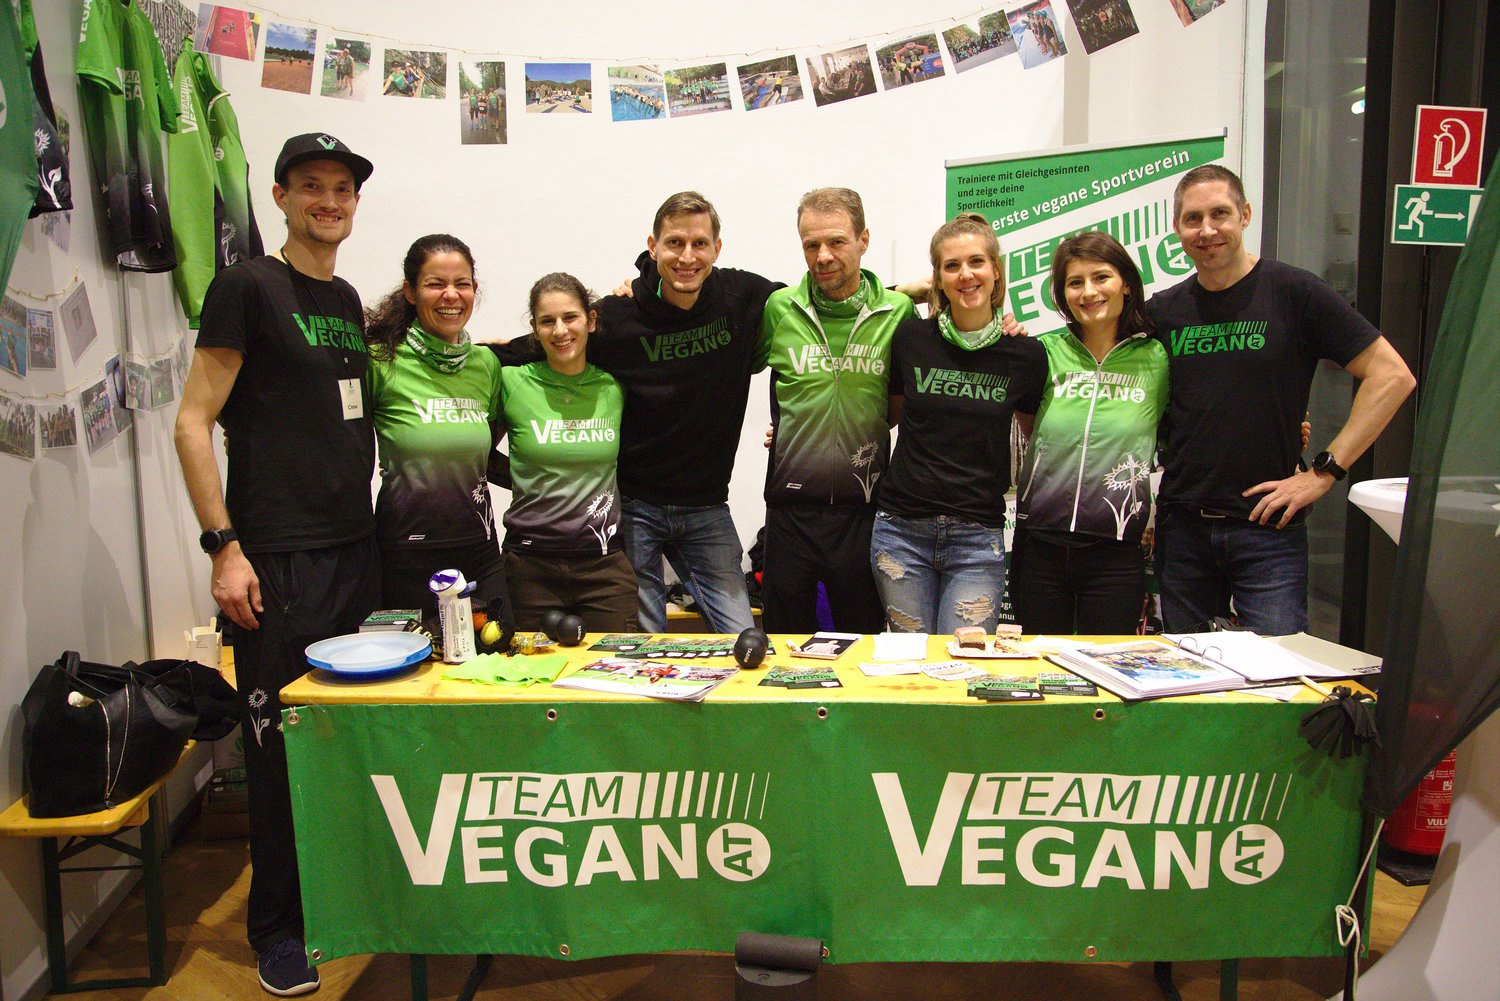 Team Vegan.at